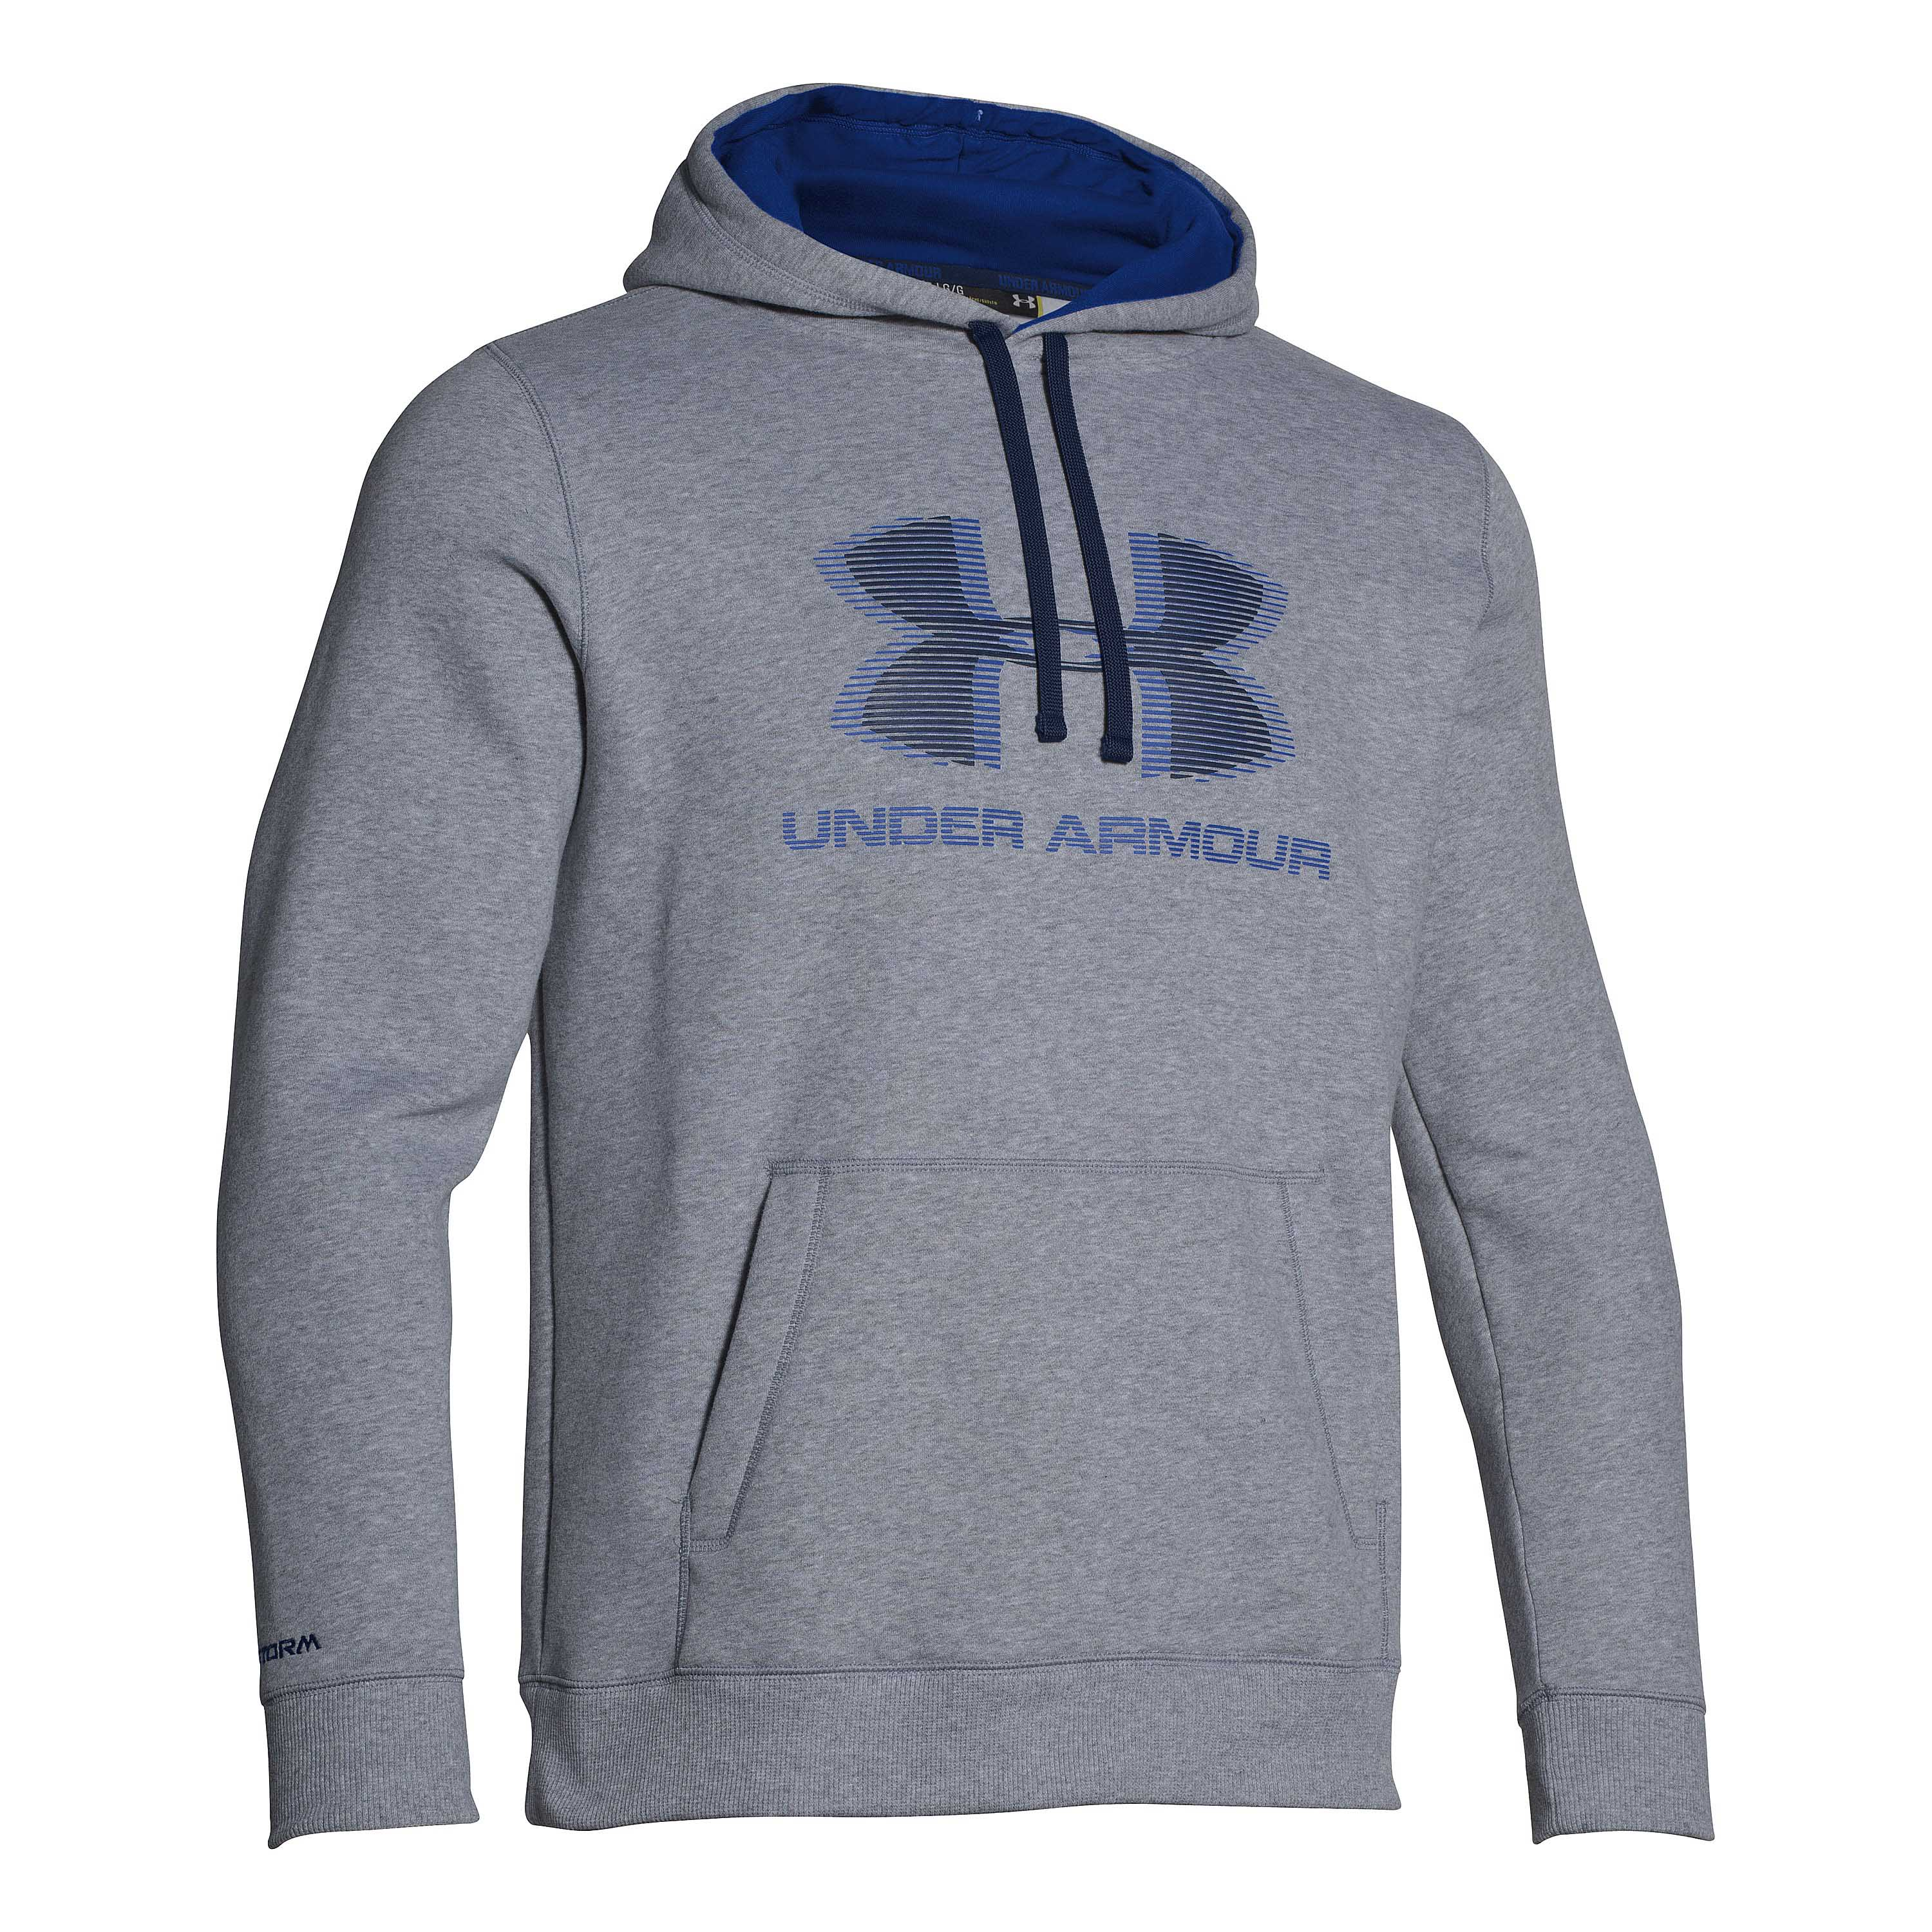 Under Armour Storm Rival Graphic Pullover grau-blau